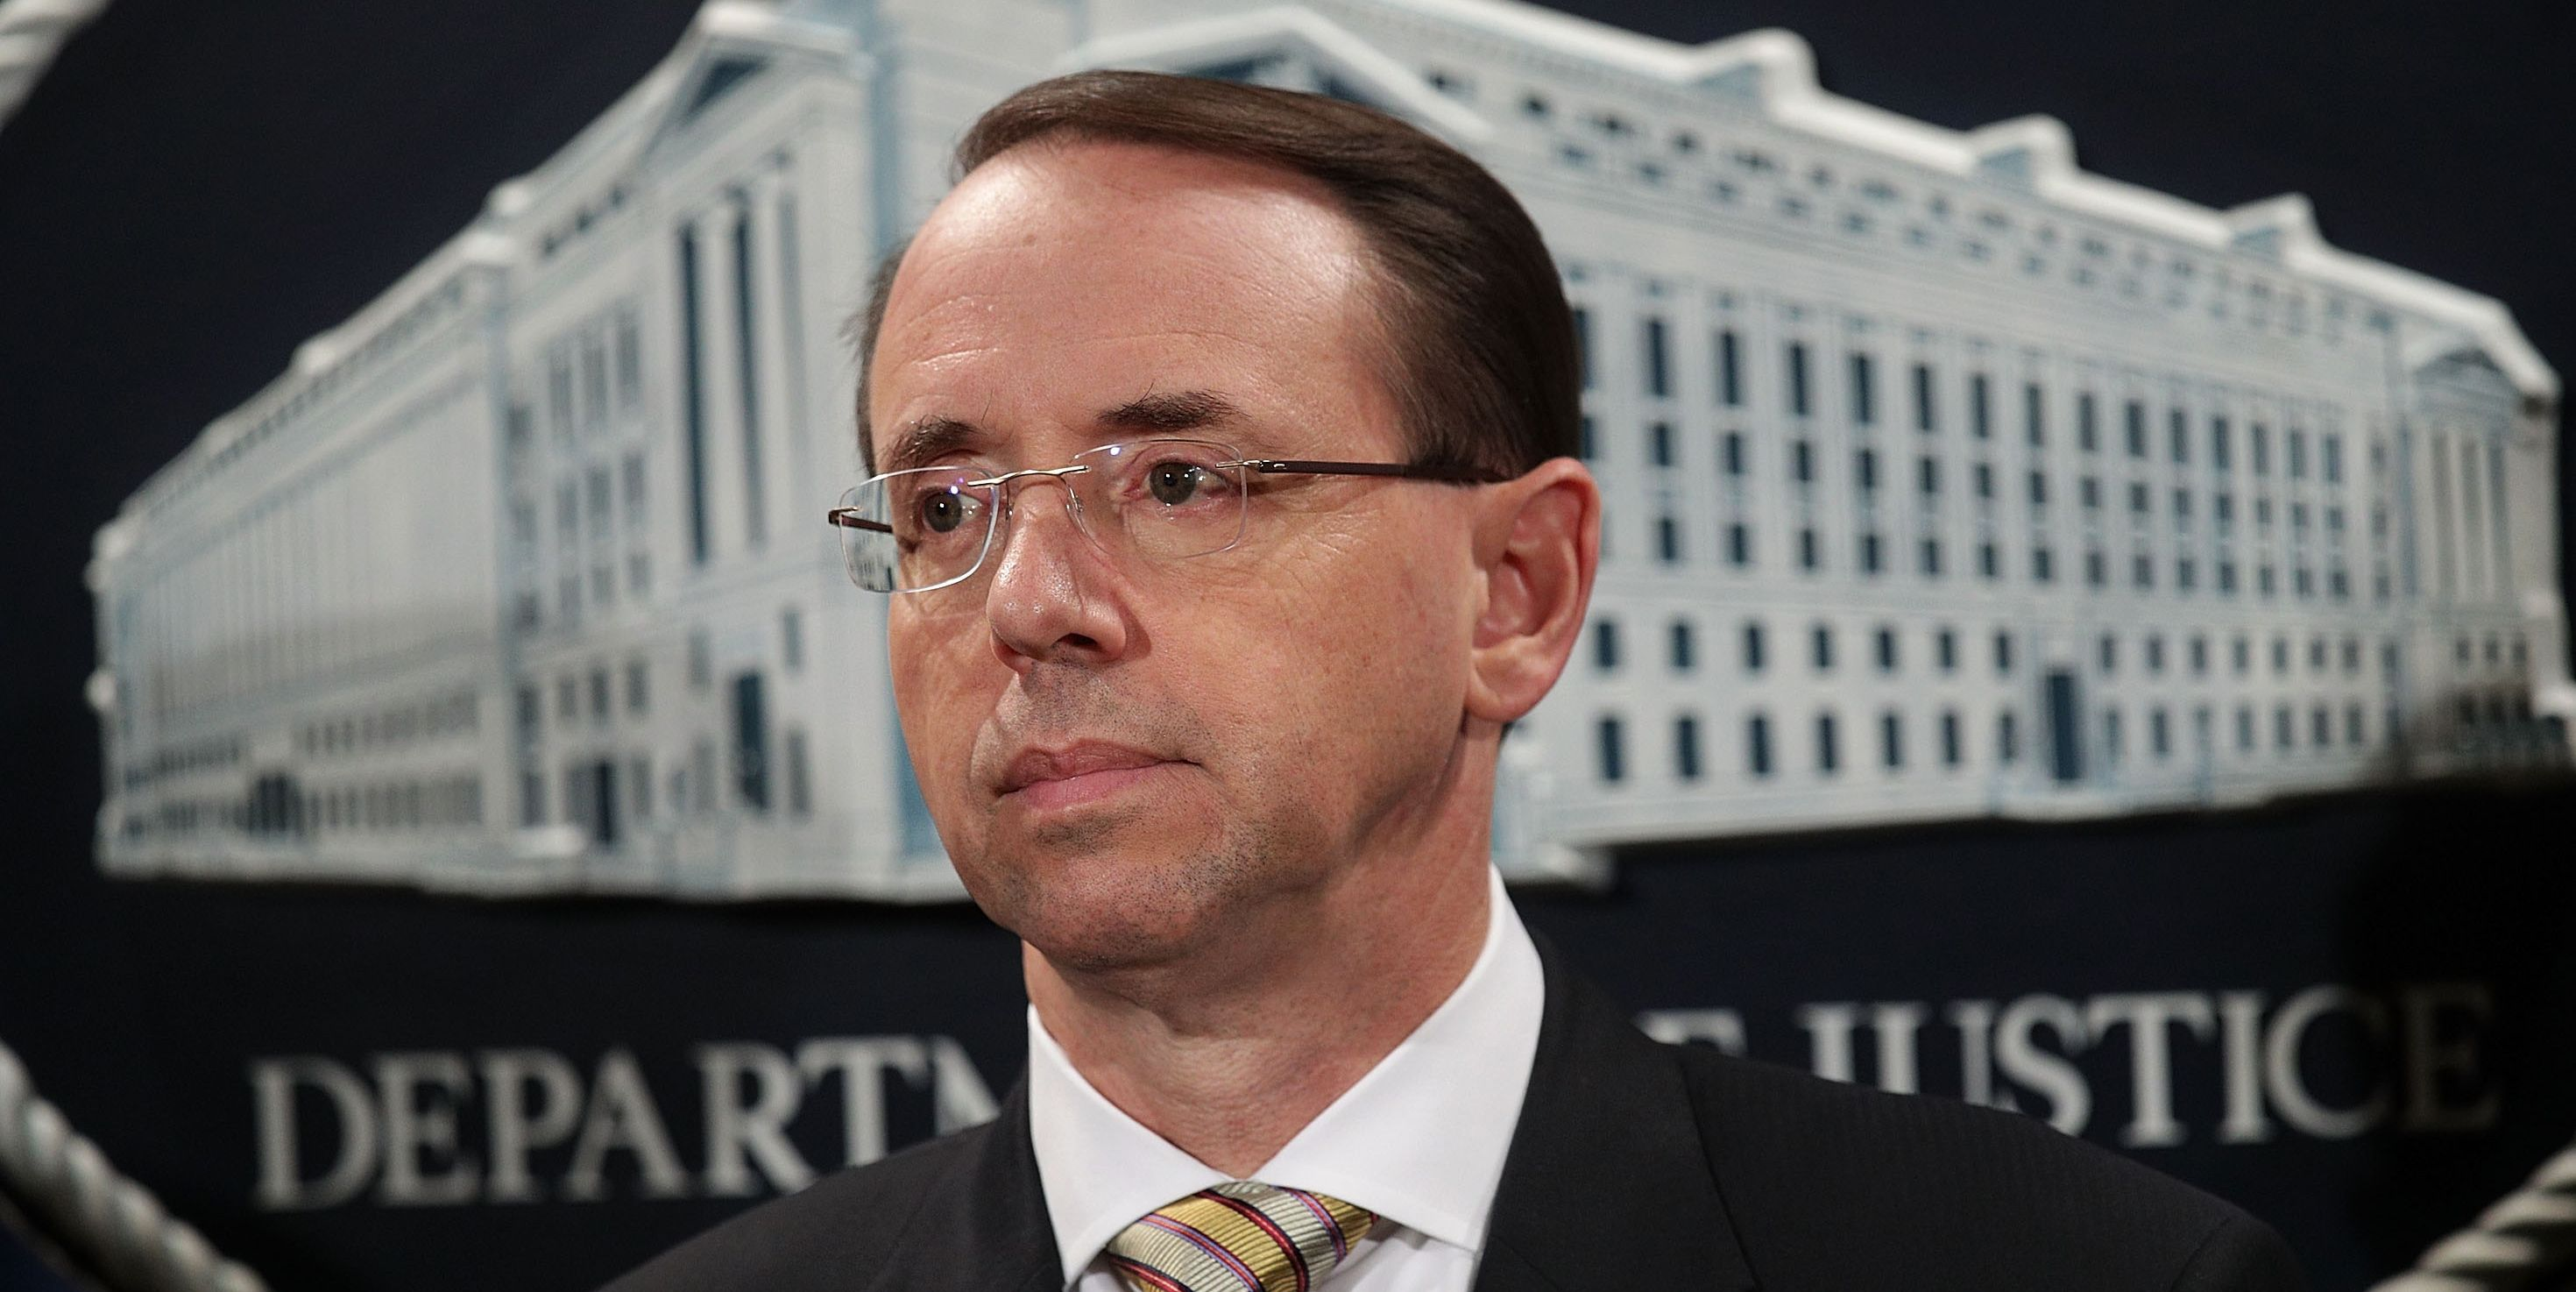 The New York Times' Rosenstein Story Is Just a Game of Telephone